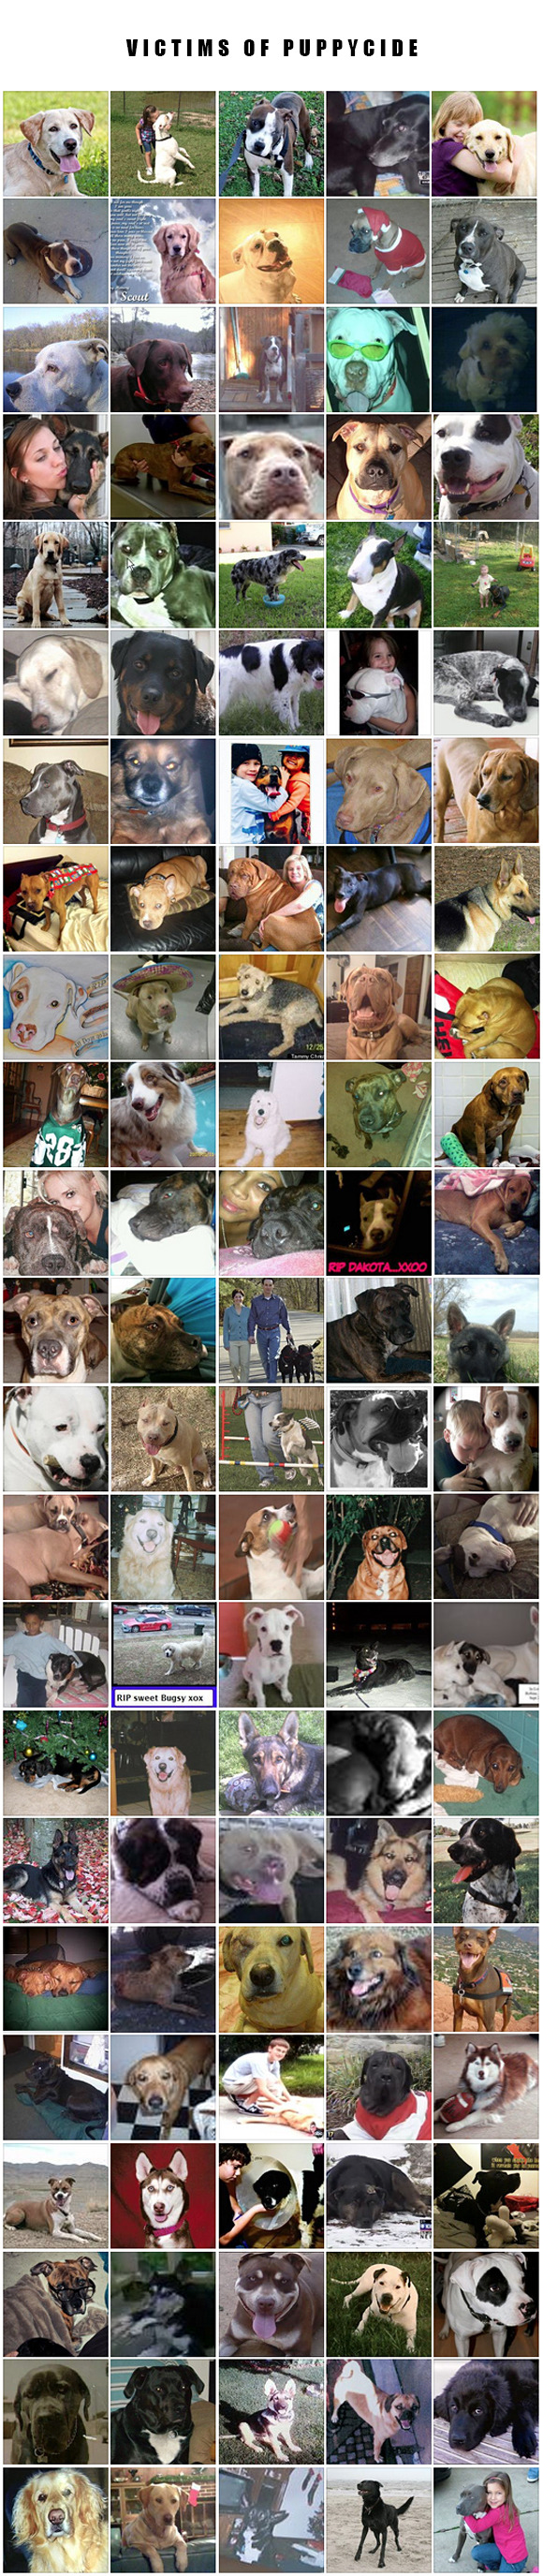 """Image courtesy of the """"Dogs Shot by Police"""" facebook page."""